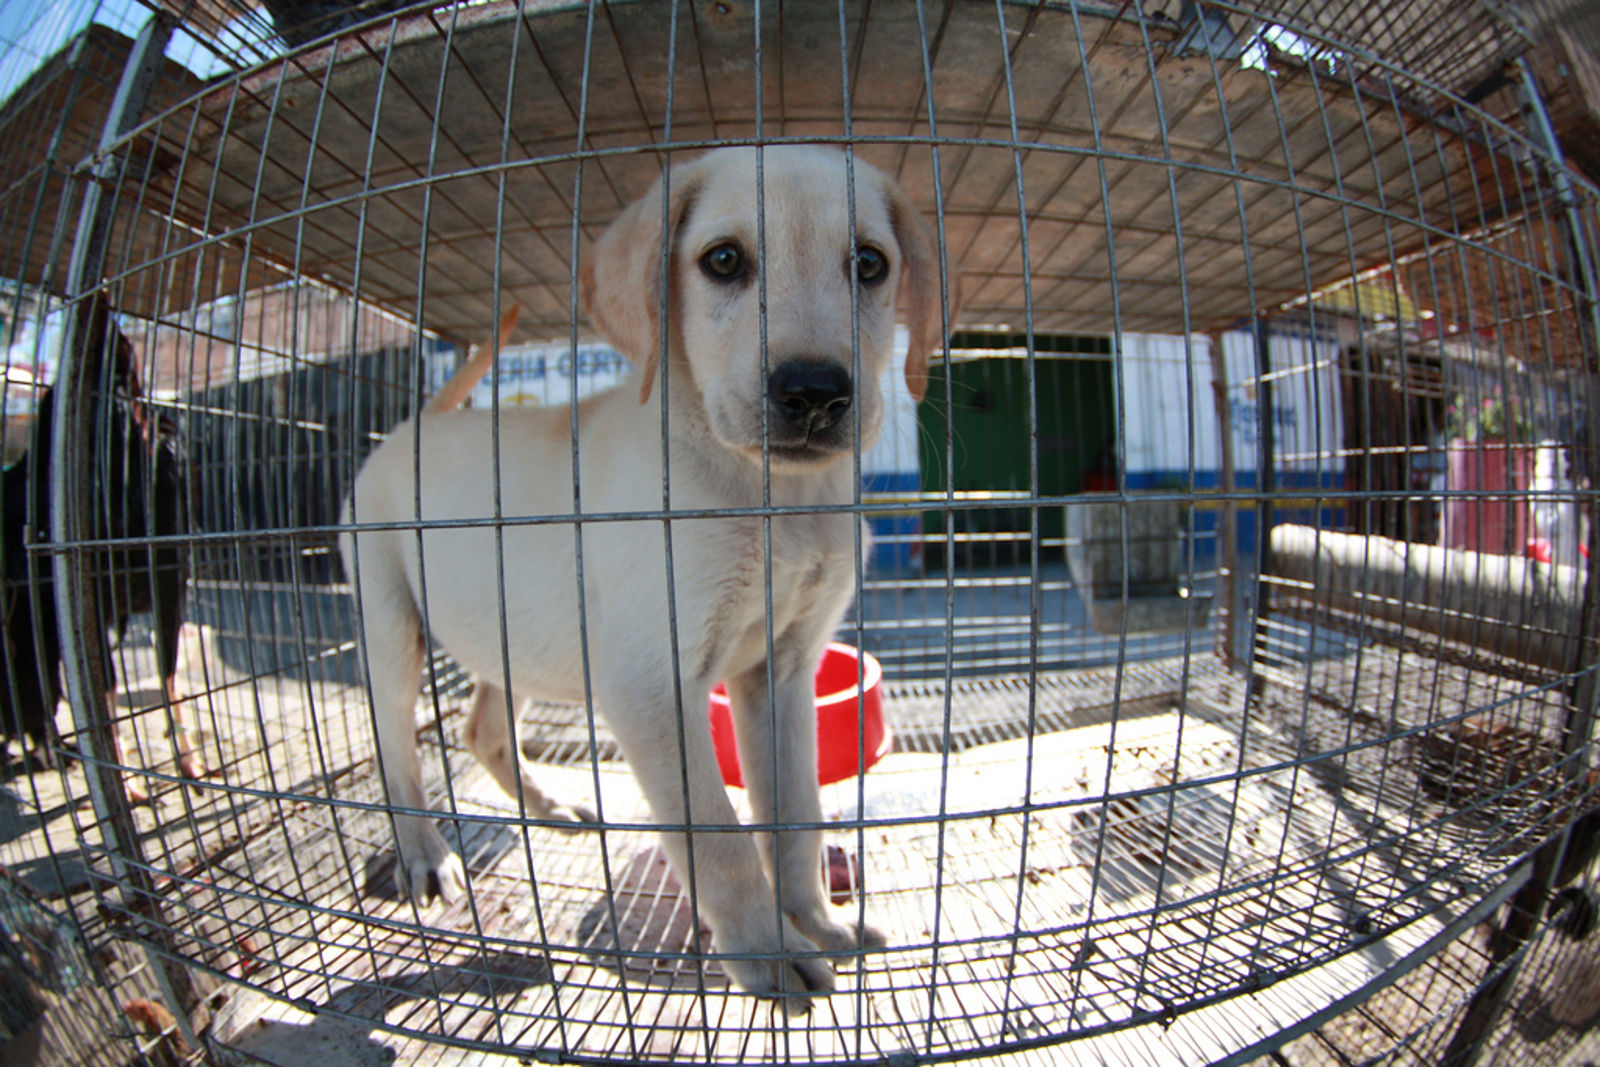 5 Things YOU Can Help Stop Puppy Mills